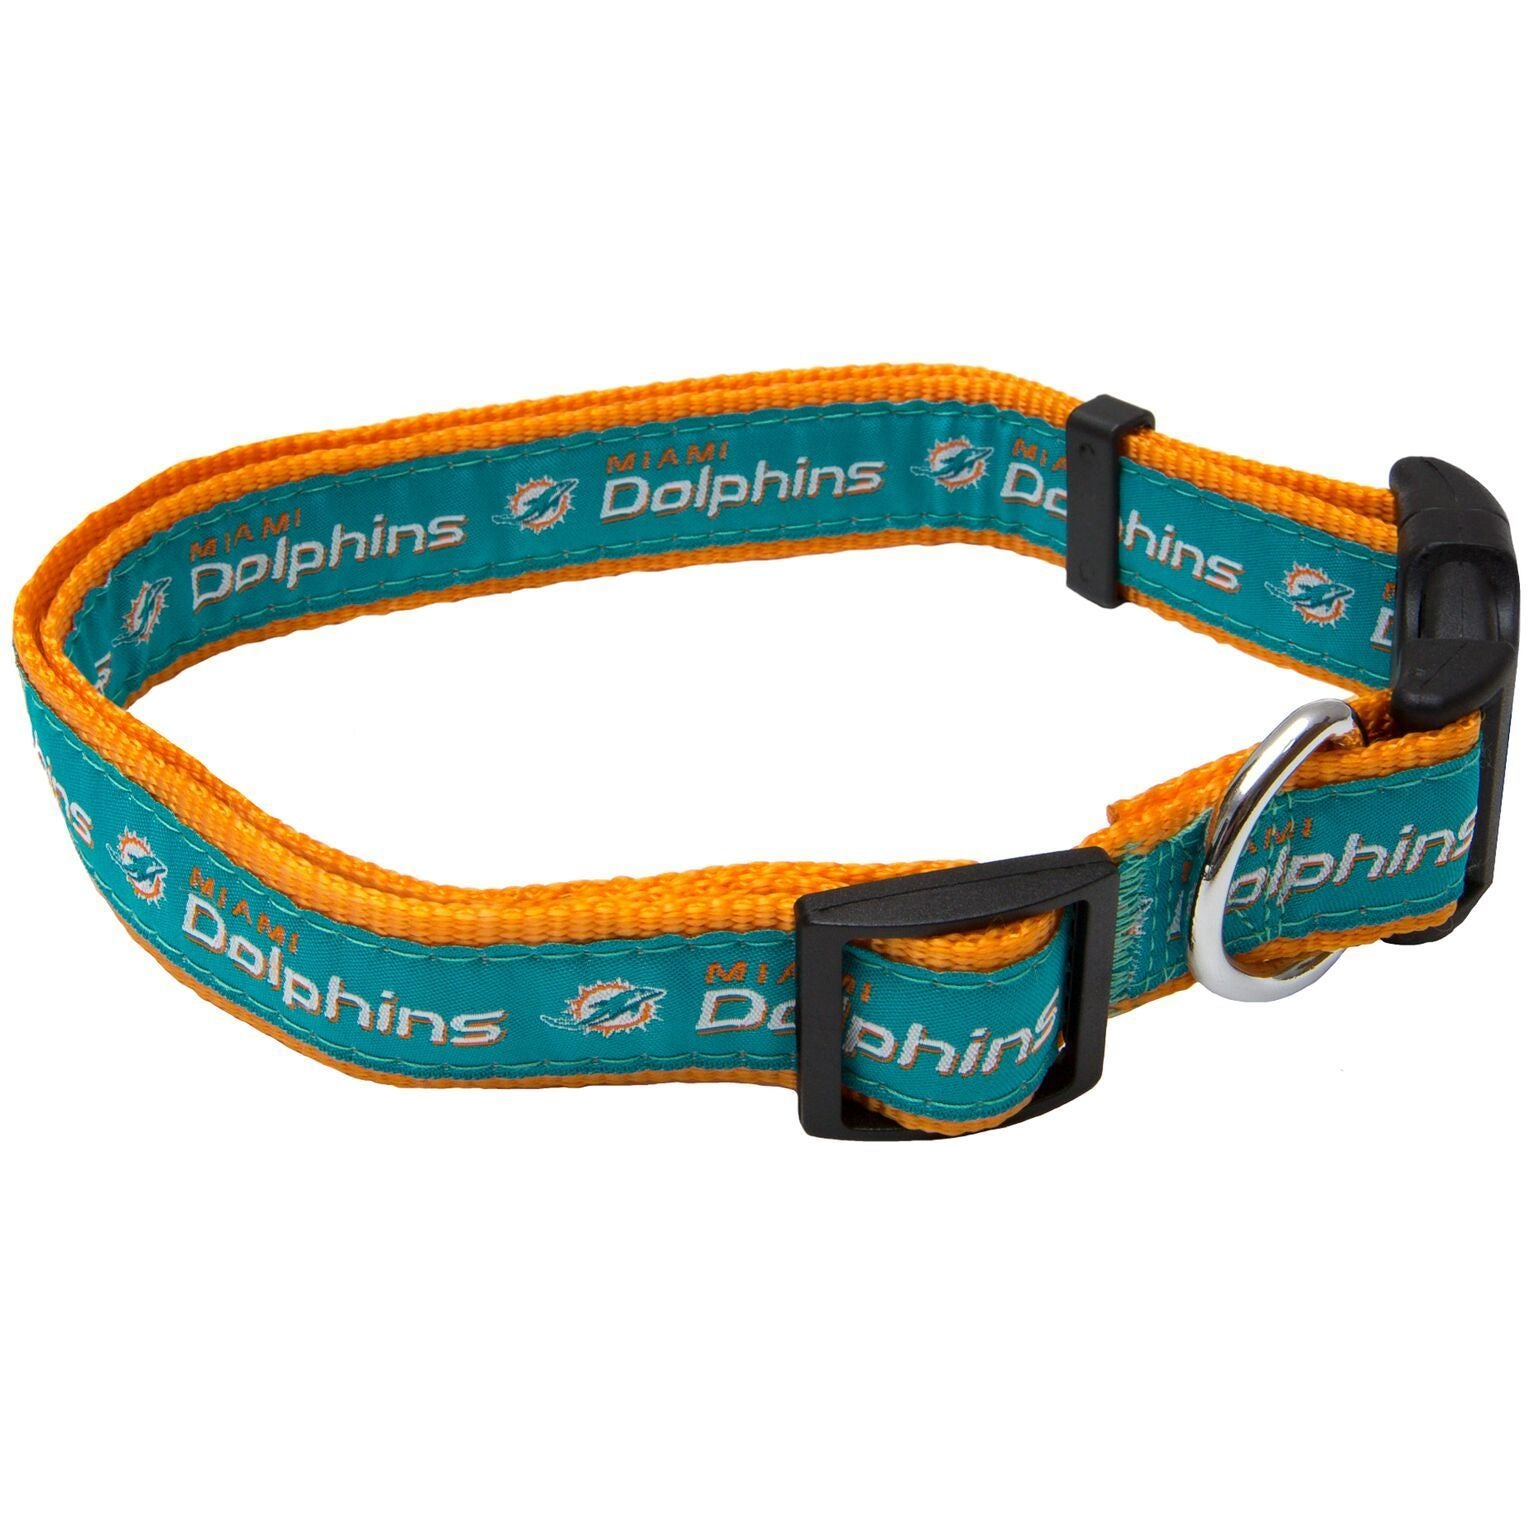 Miami Dolphins Puppy Dog Football Jersey Cheerleading Uniform Collar Leash - Jersey Champs - Custom Basketball, Baseball, Football & Hockey Jerseys